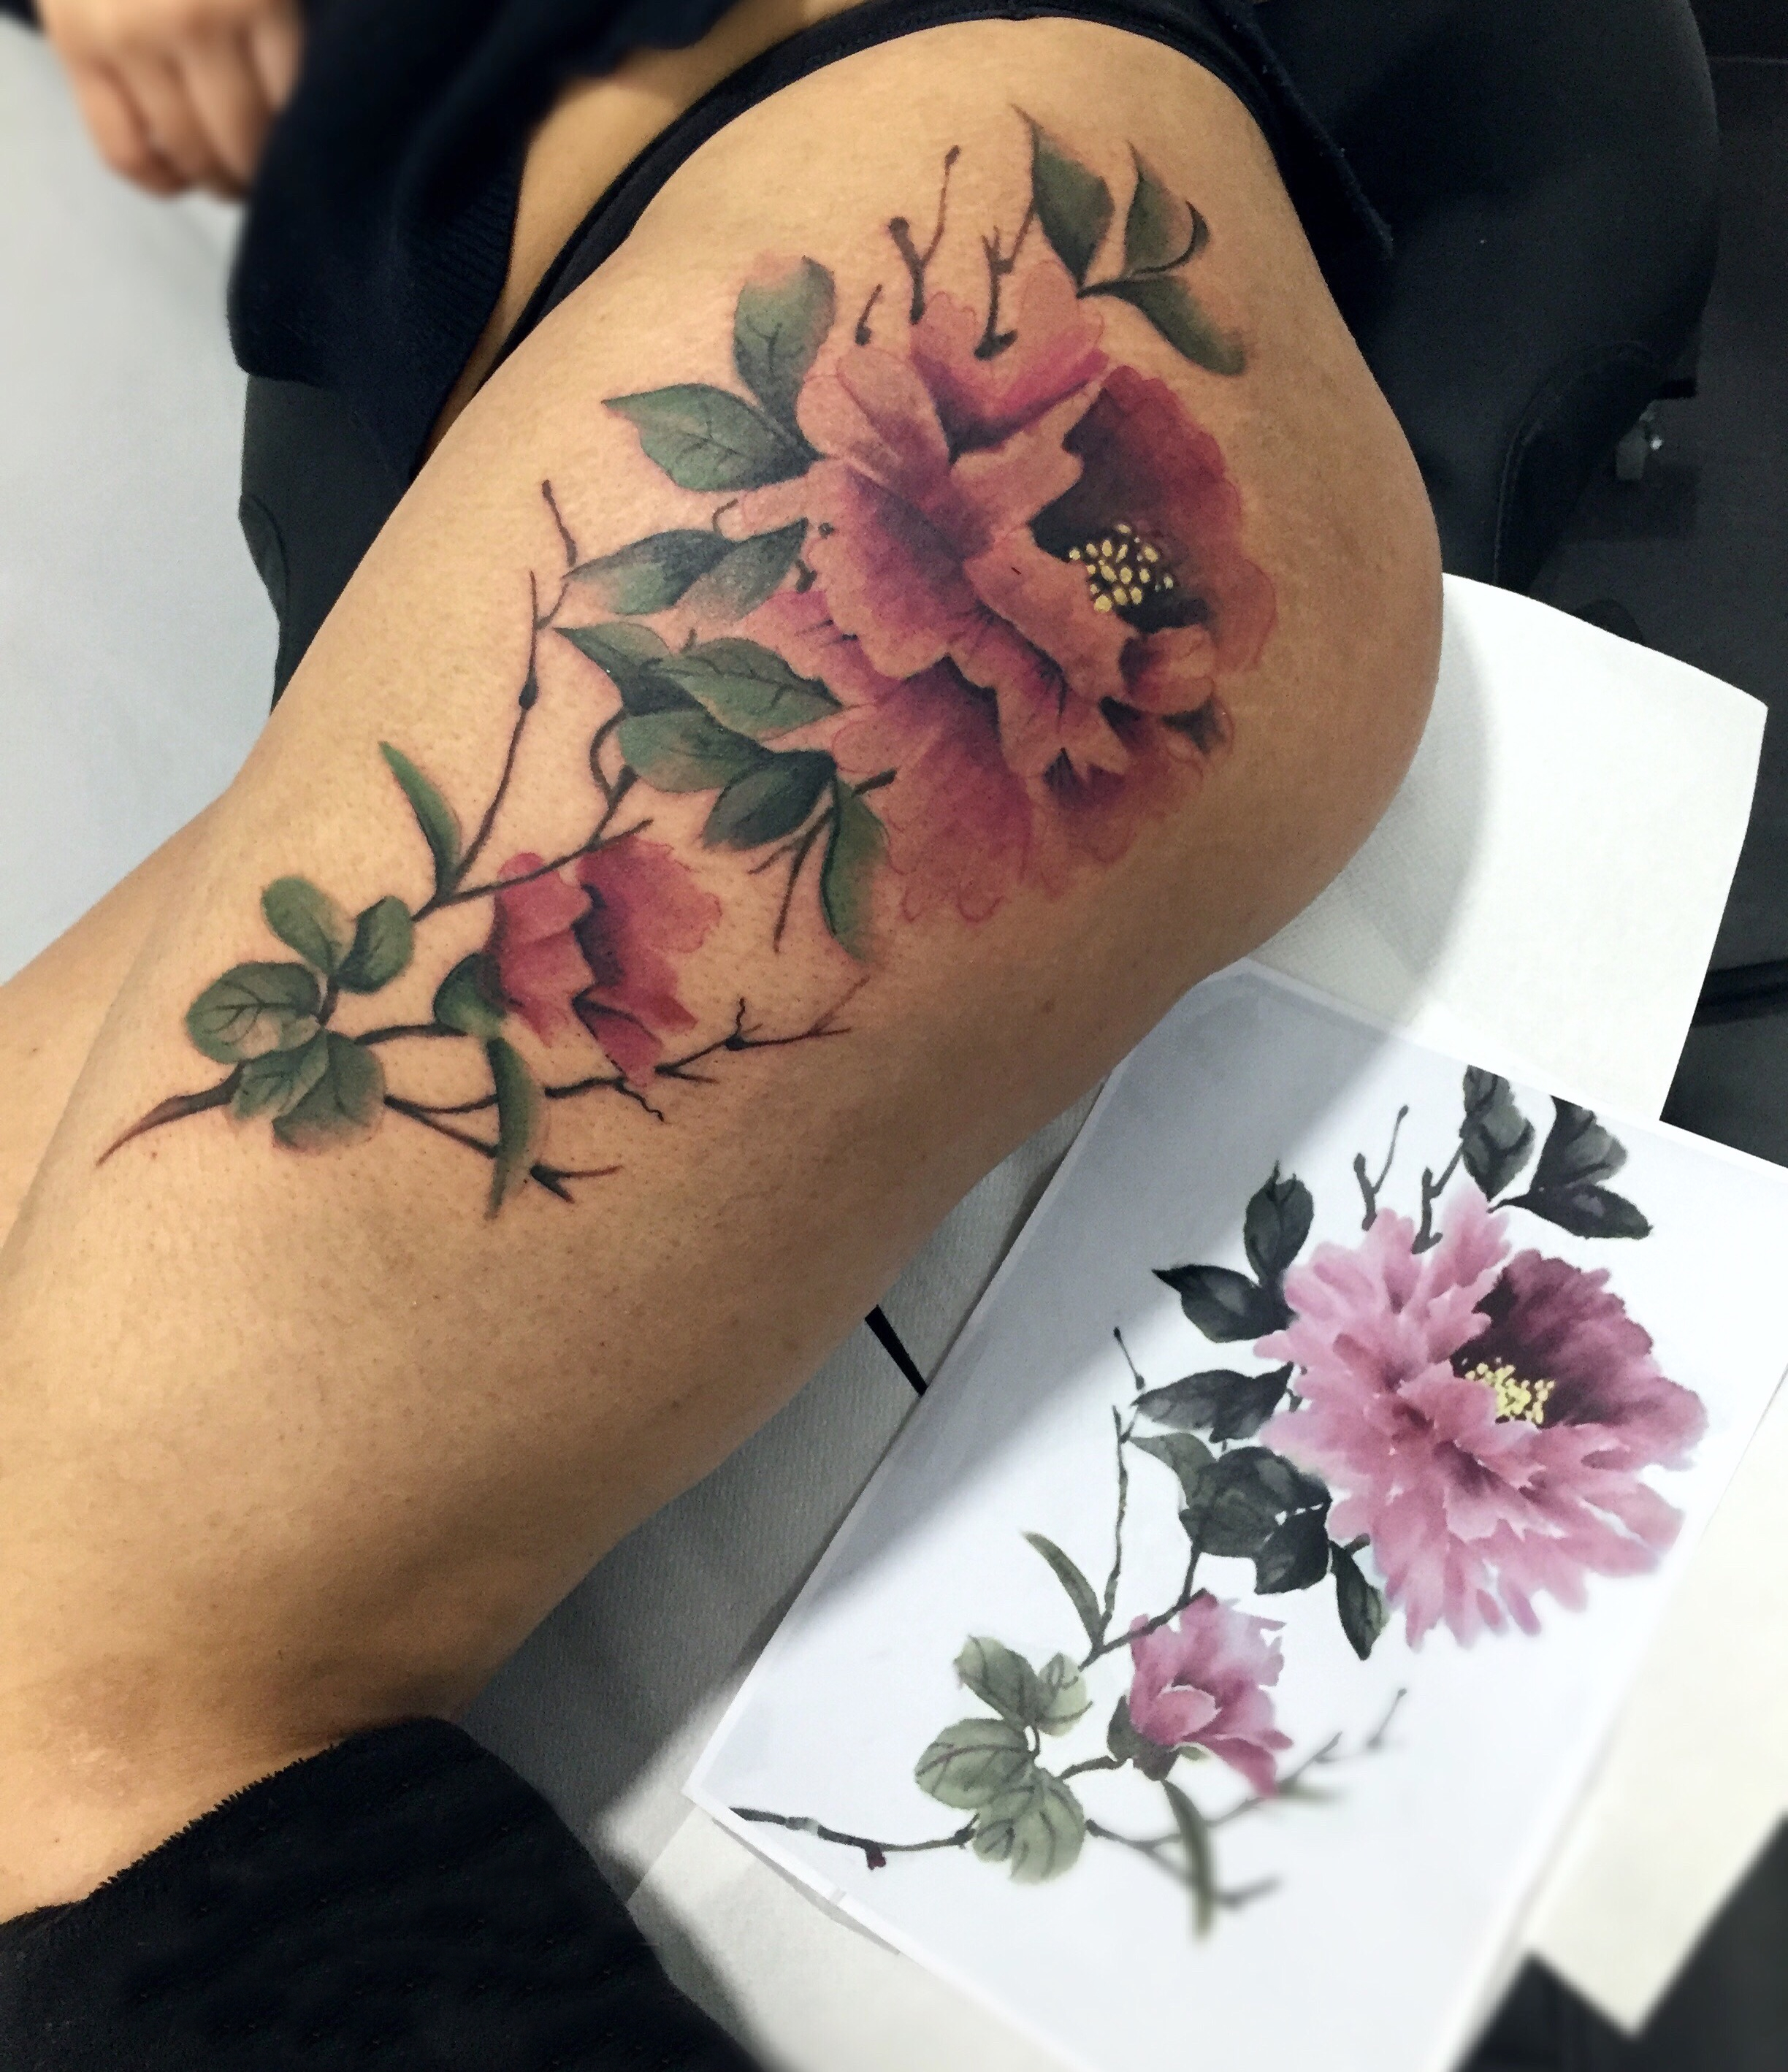 Tattoo by Sergio Exposito